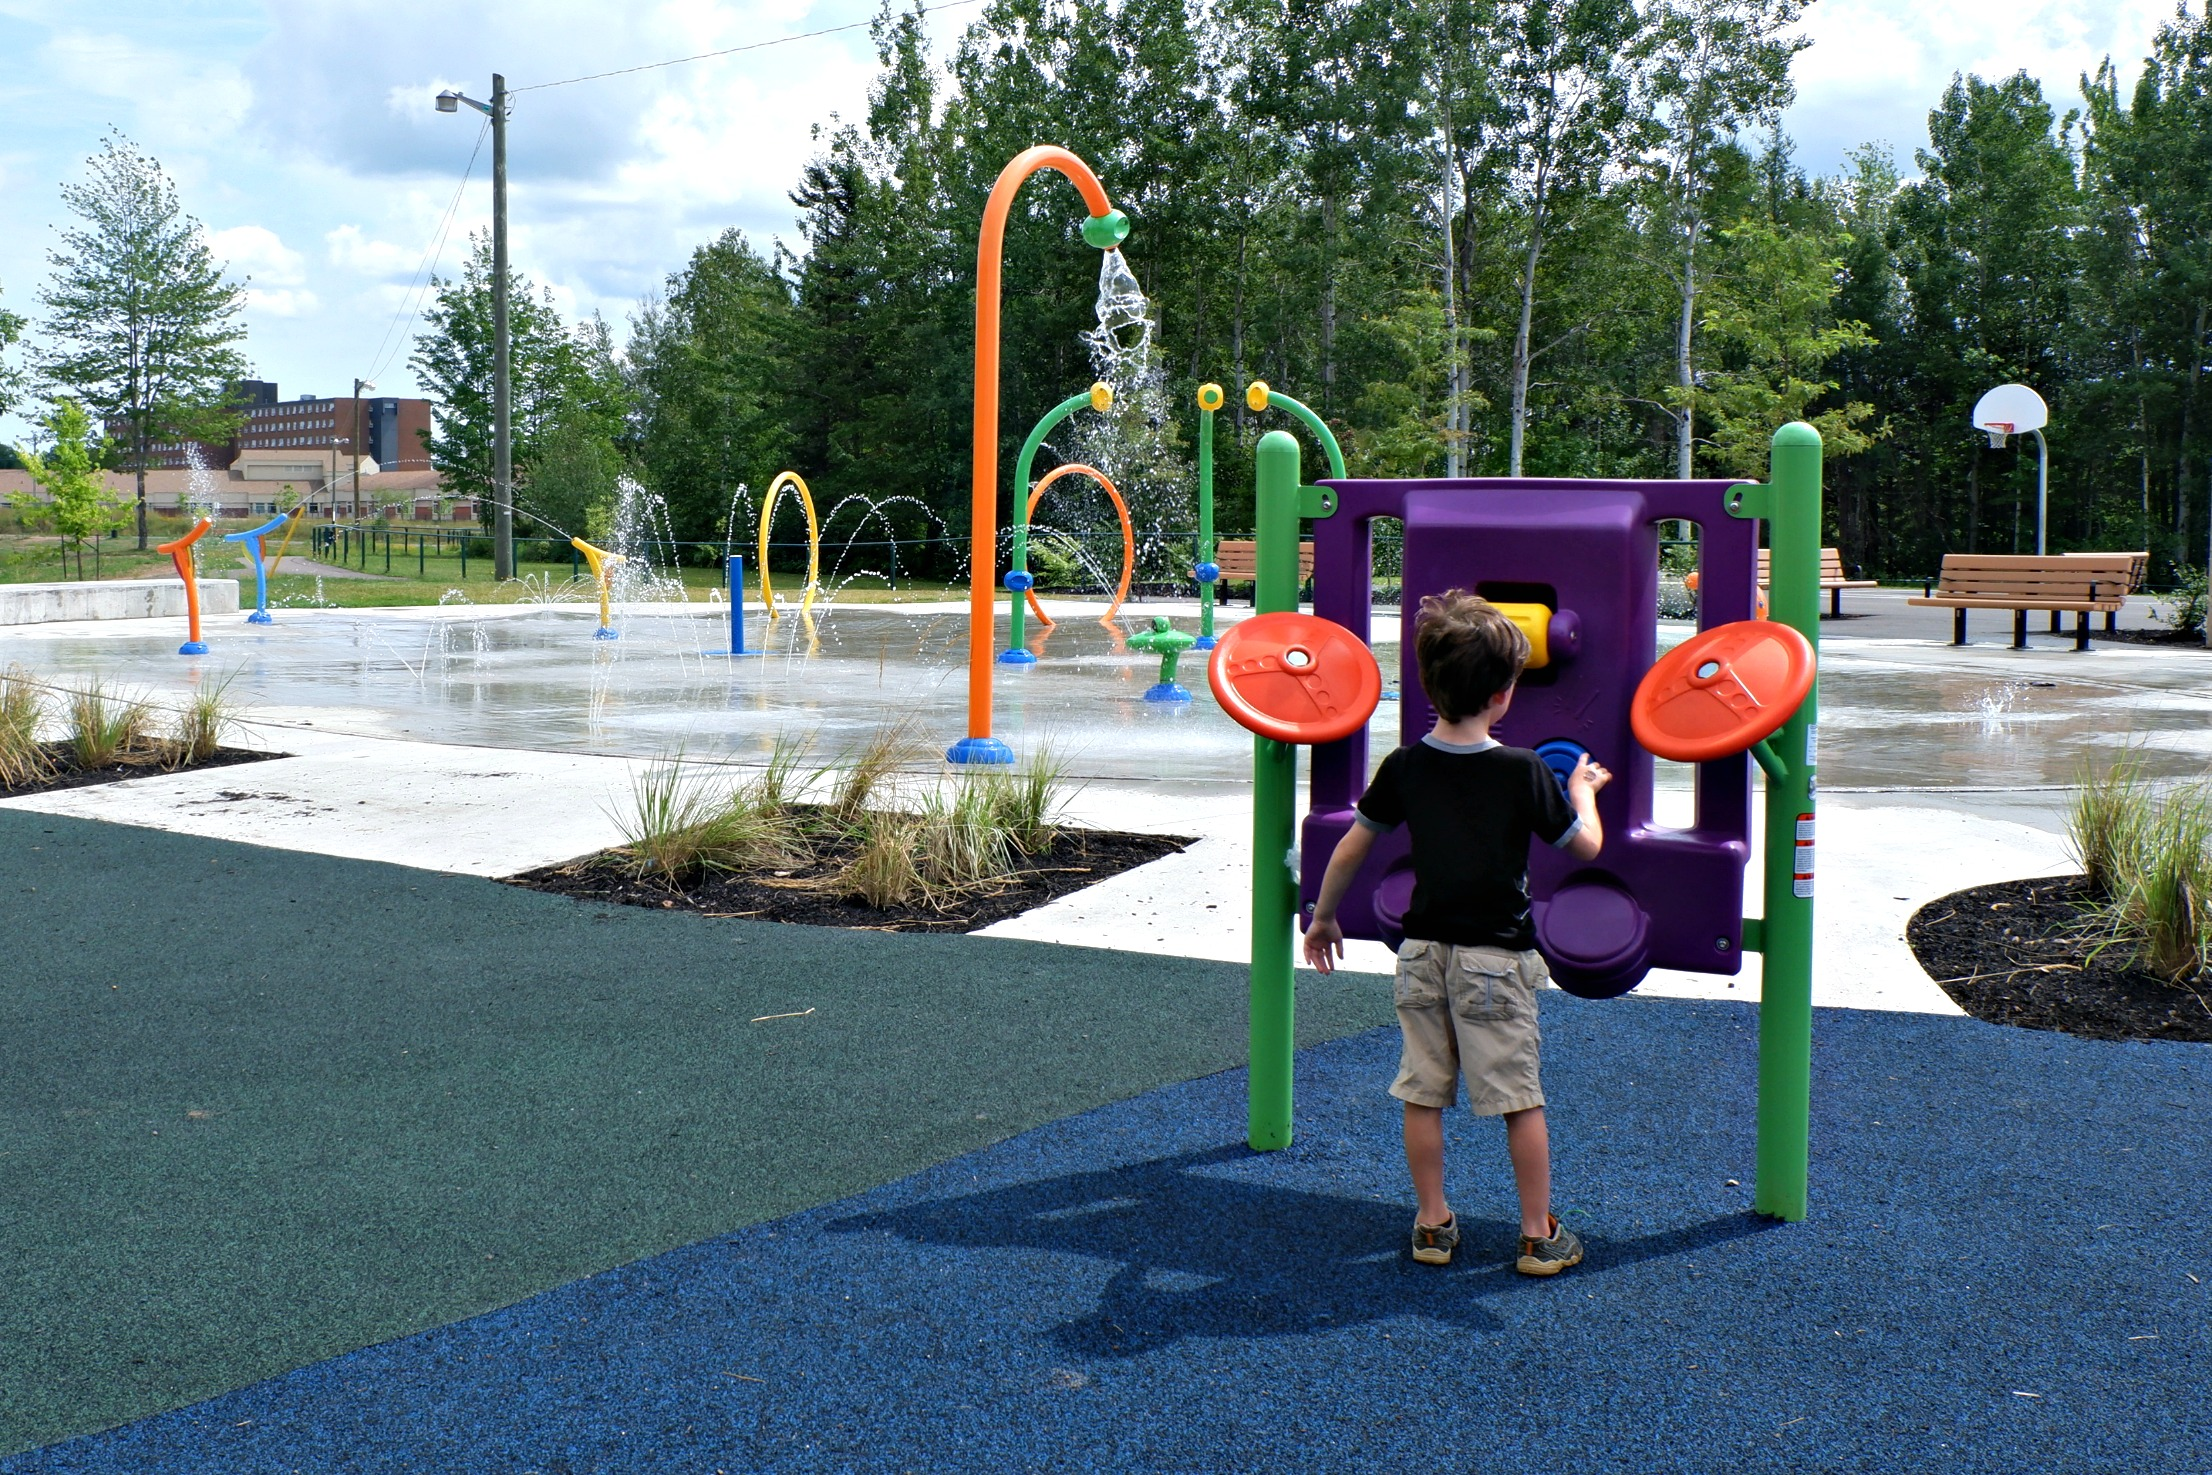 fairview knoll playground park moncton splash pad pickle planet near highway basketball court